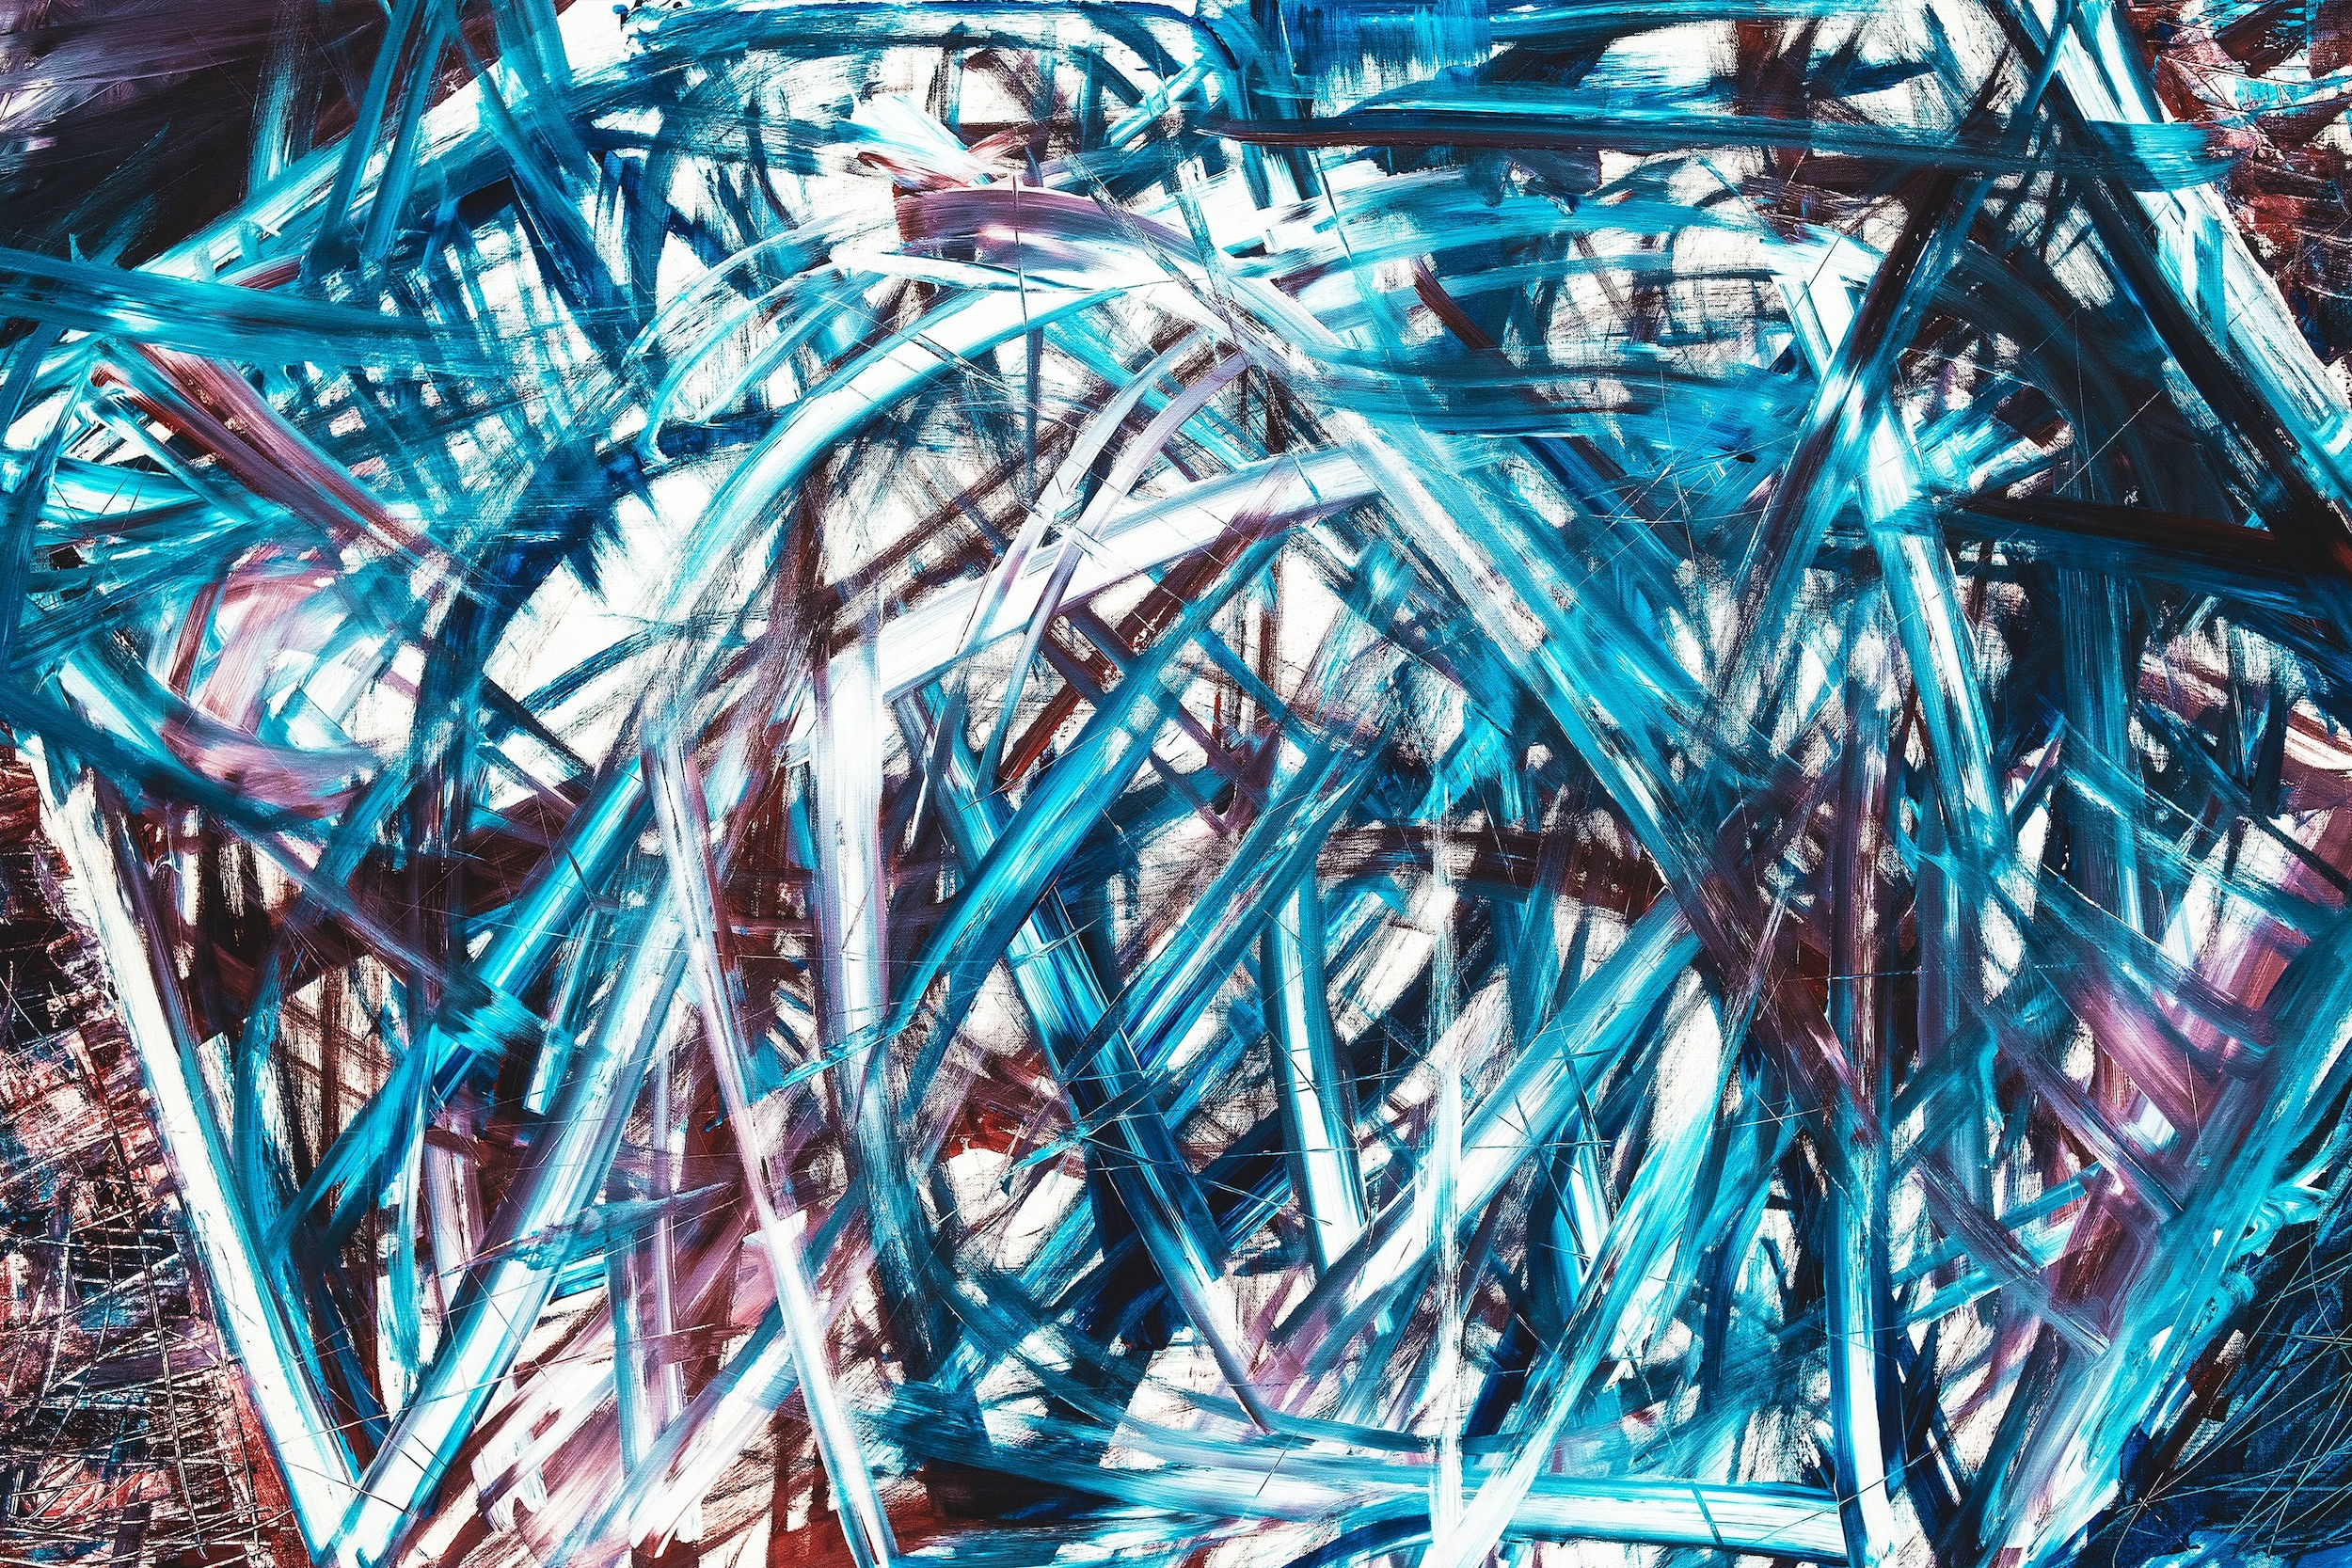 Chaotic paint strokes on canvas